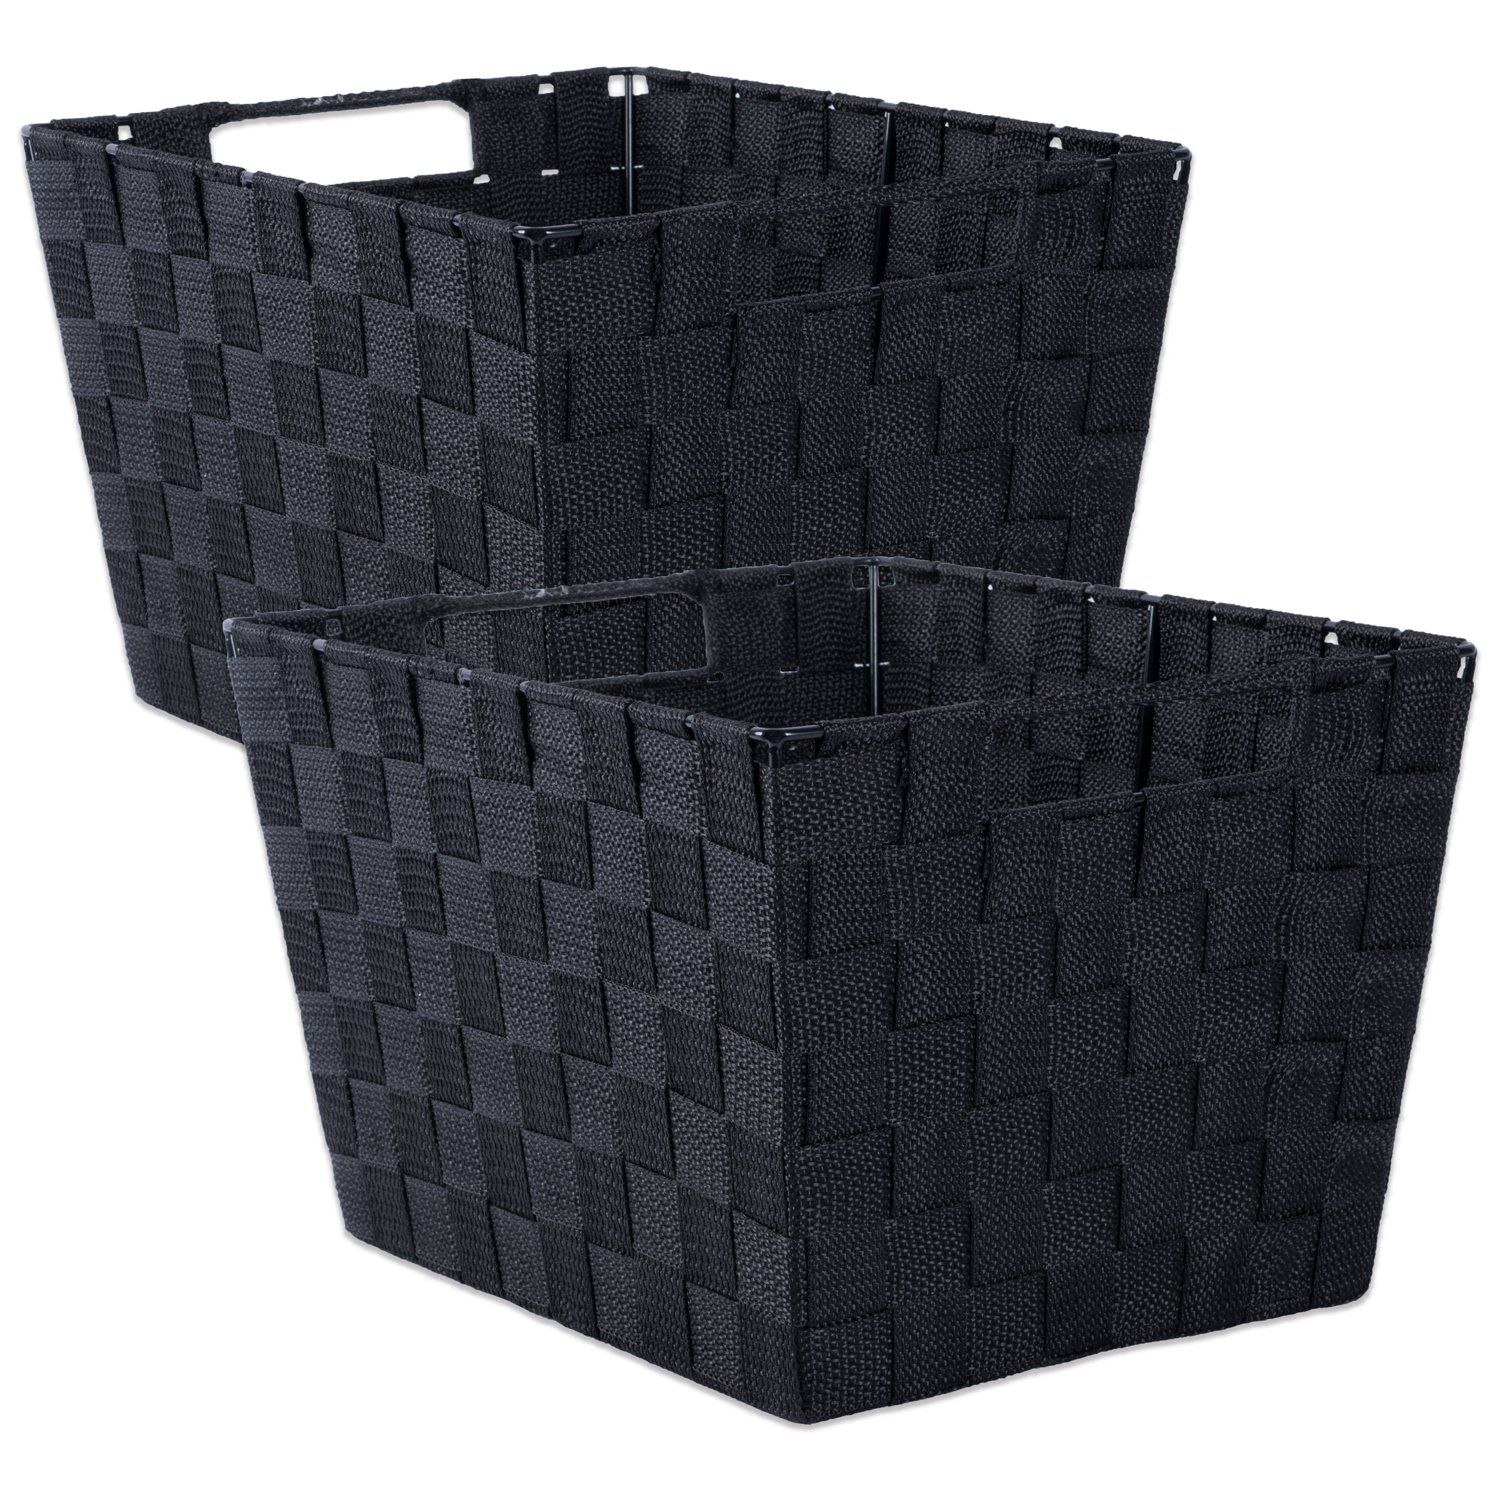 DII Durable Trapezoid Woven Nylon Storage Bin or Basket for Organizing Your Home, Office, or Closets (Large Basket - 13x15x10'') Black - Set of 2